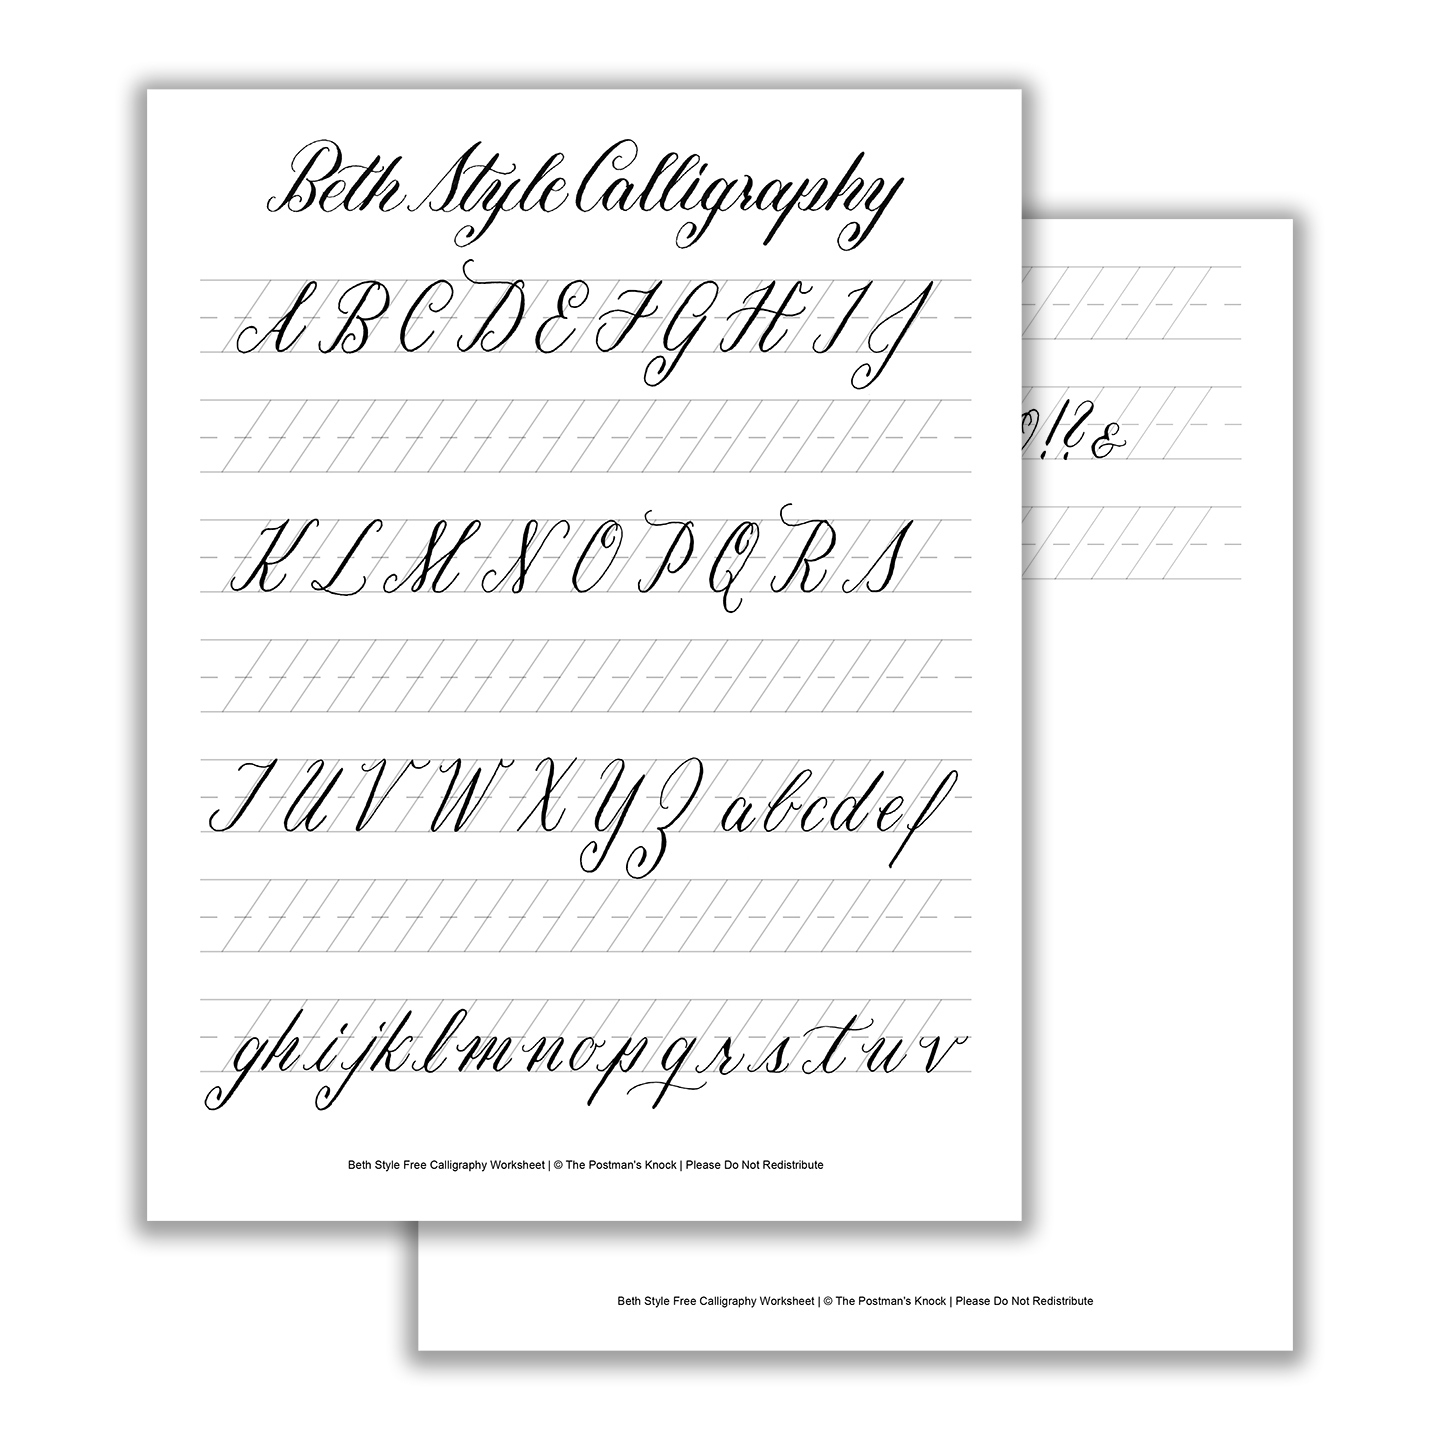 Beth Style Calligraphy Standard Worksheet | The Postman's Knock - Free Printable Calligraphy Worksheets